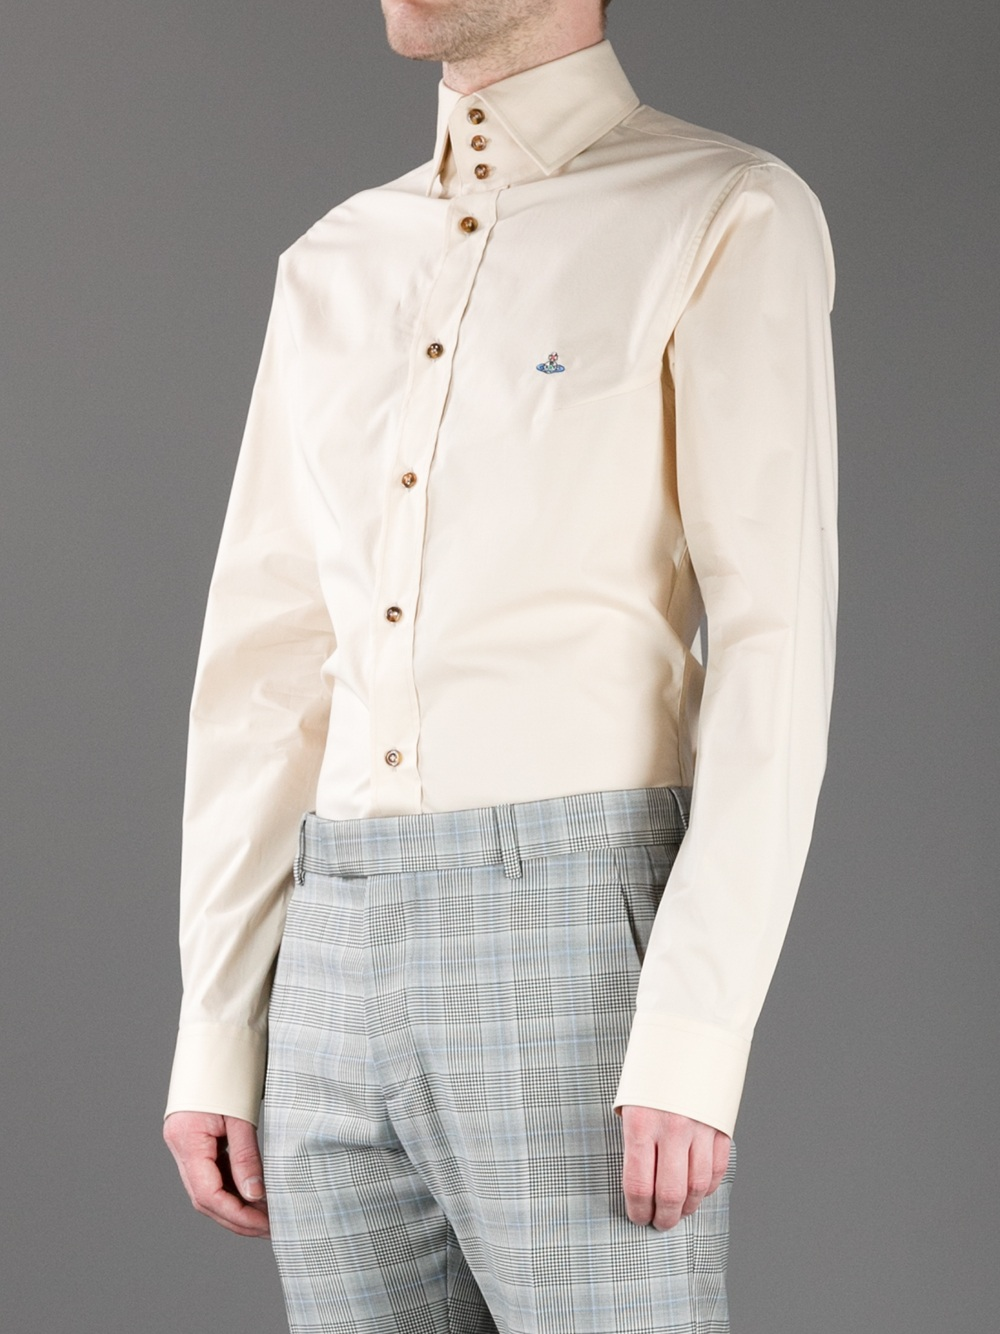 Vivienne westwood three button collar shirt in beige for for Three button collar shirts